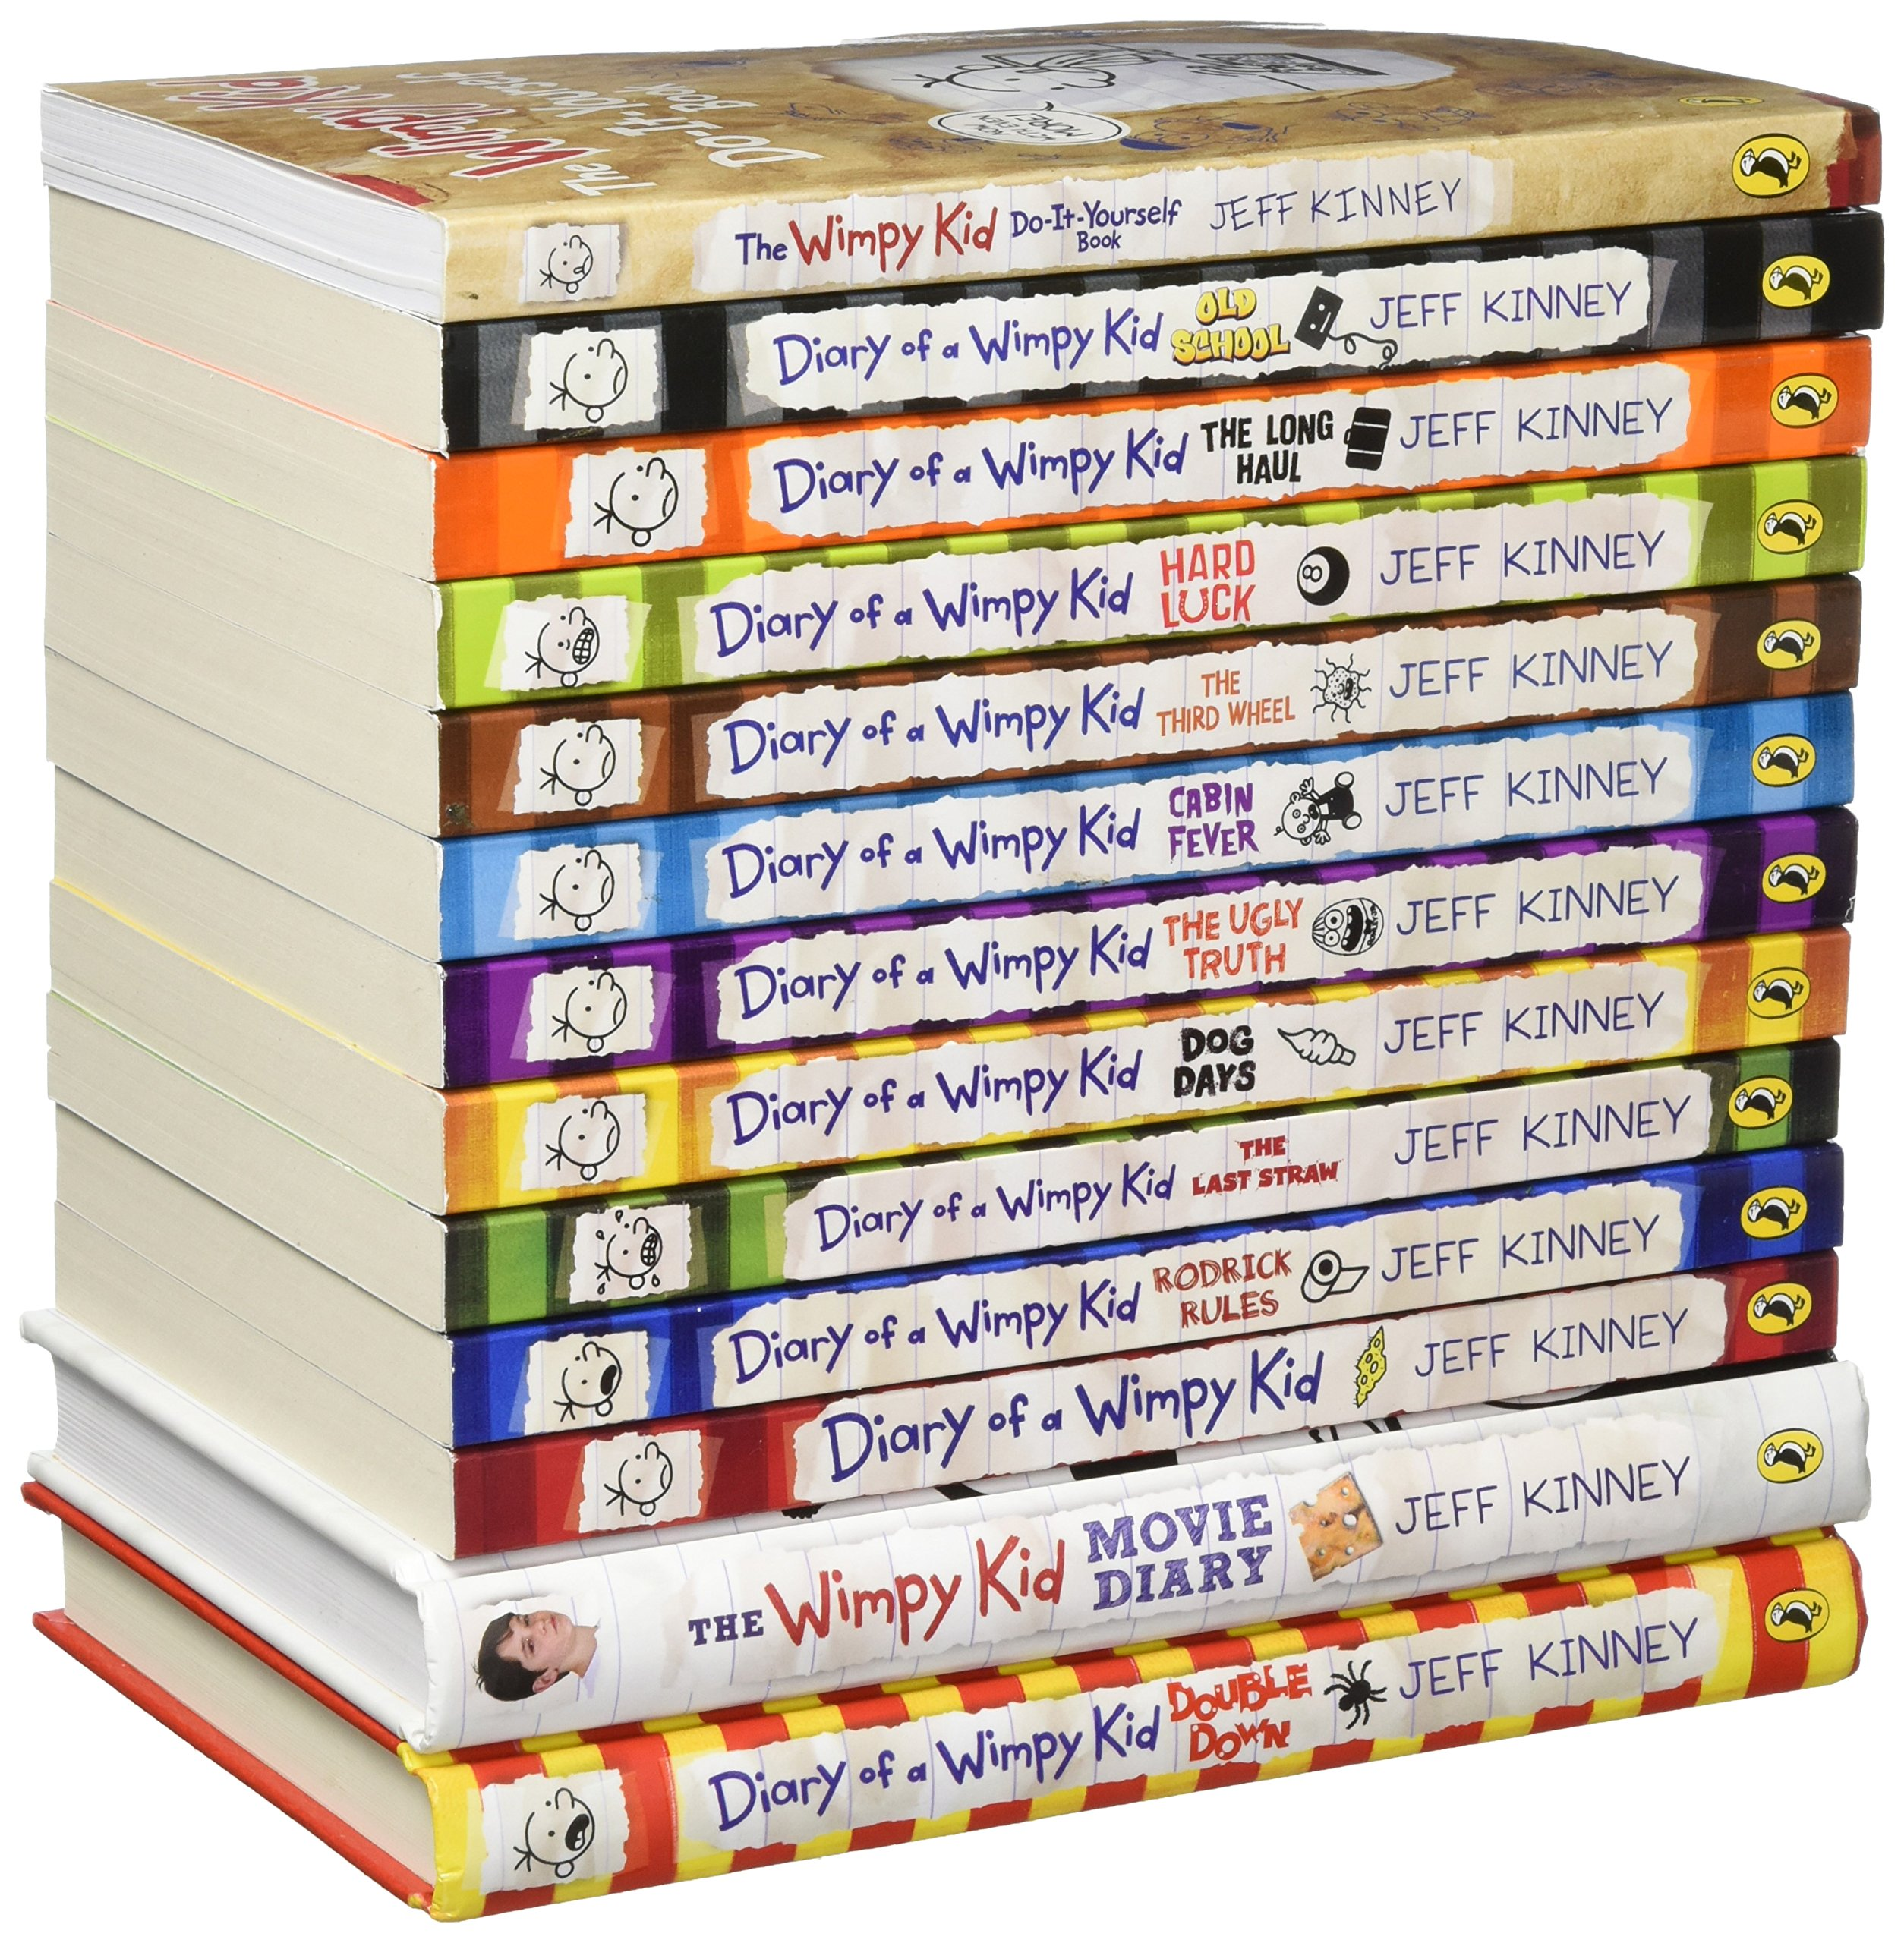 Diary of a wimpy kid collection 13 books set double down old diary of a wimpy kid collection 13 books set double down old school hard luck third wheel cabin fever the ugly truth dog days do it yourself book solutioingenieria